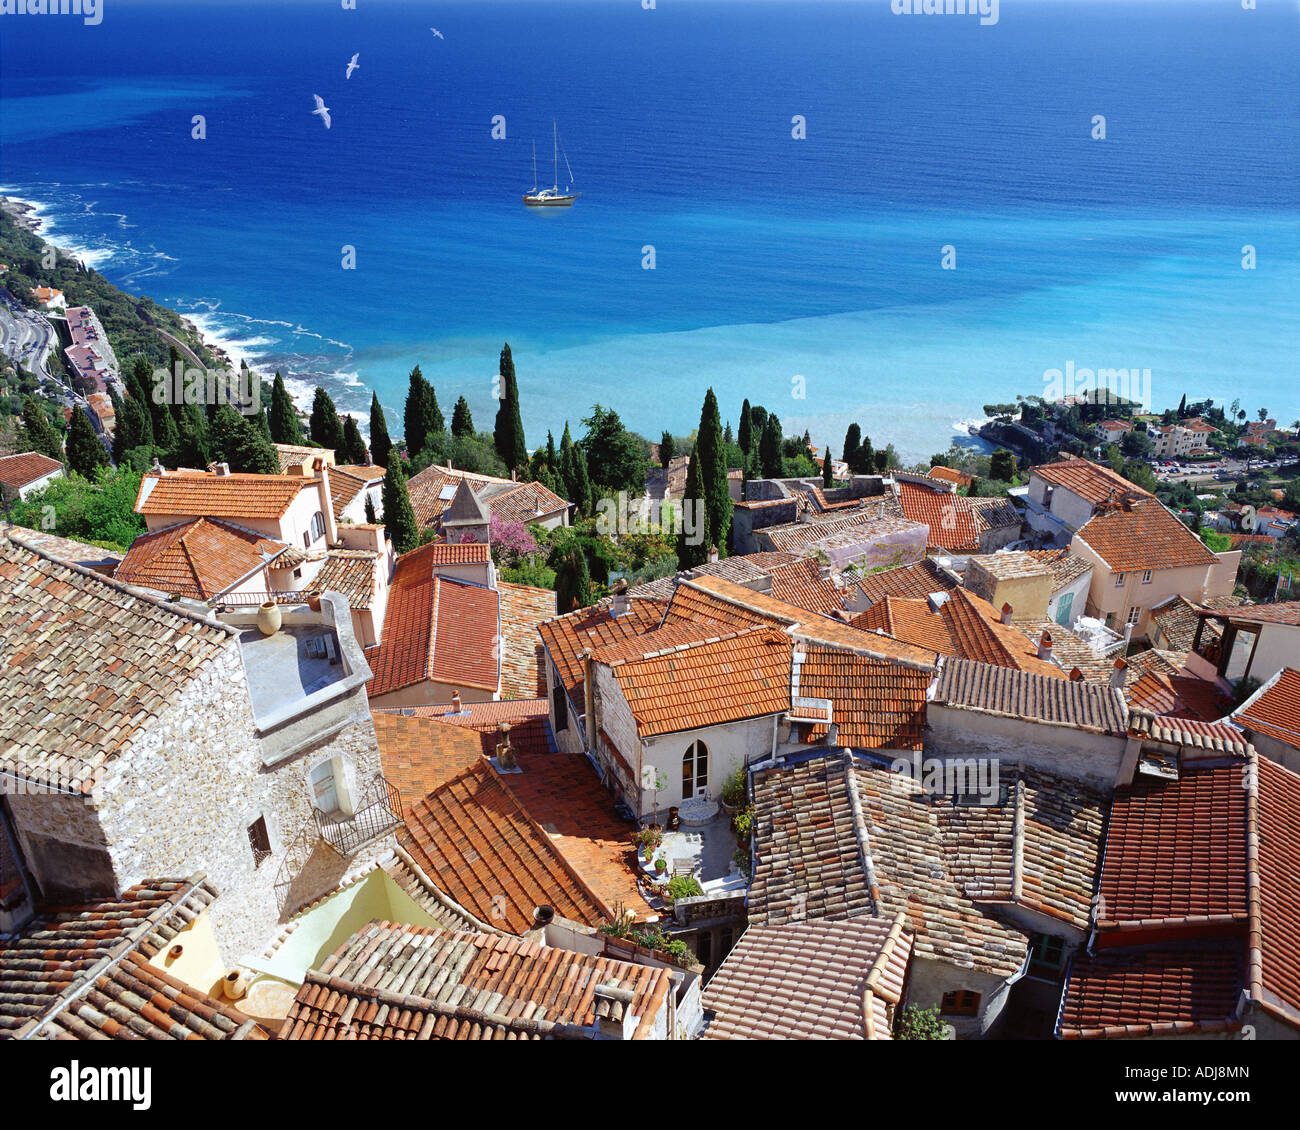 FR - CÔTE D'AZUR : Village de Roquebrune Cap Martin Photo Stock